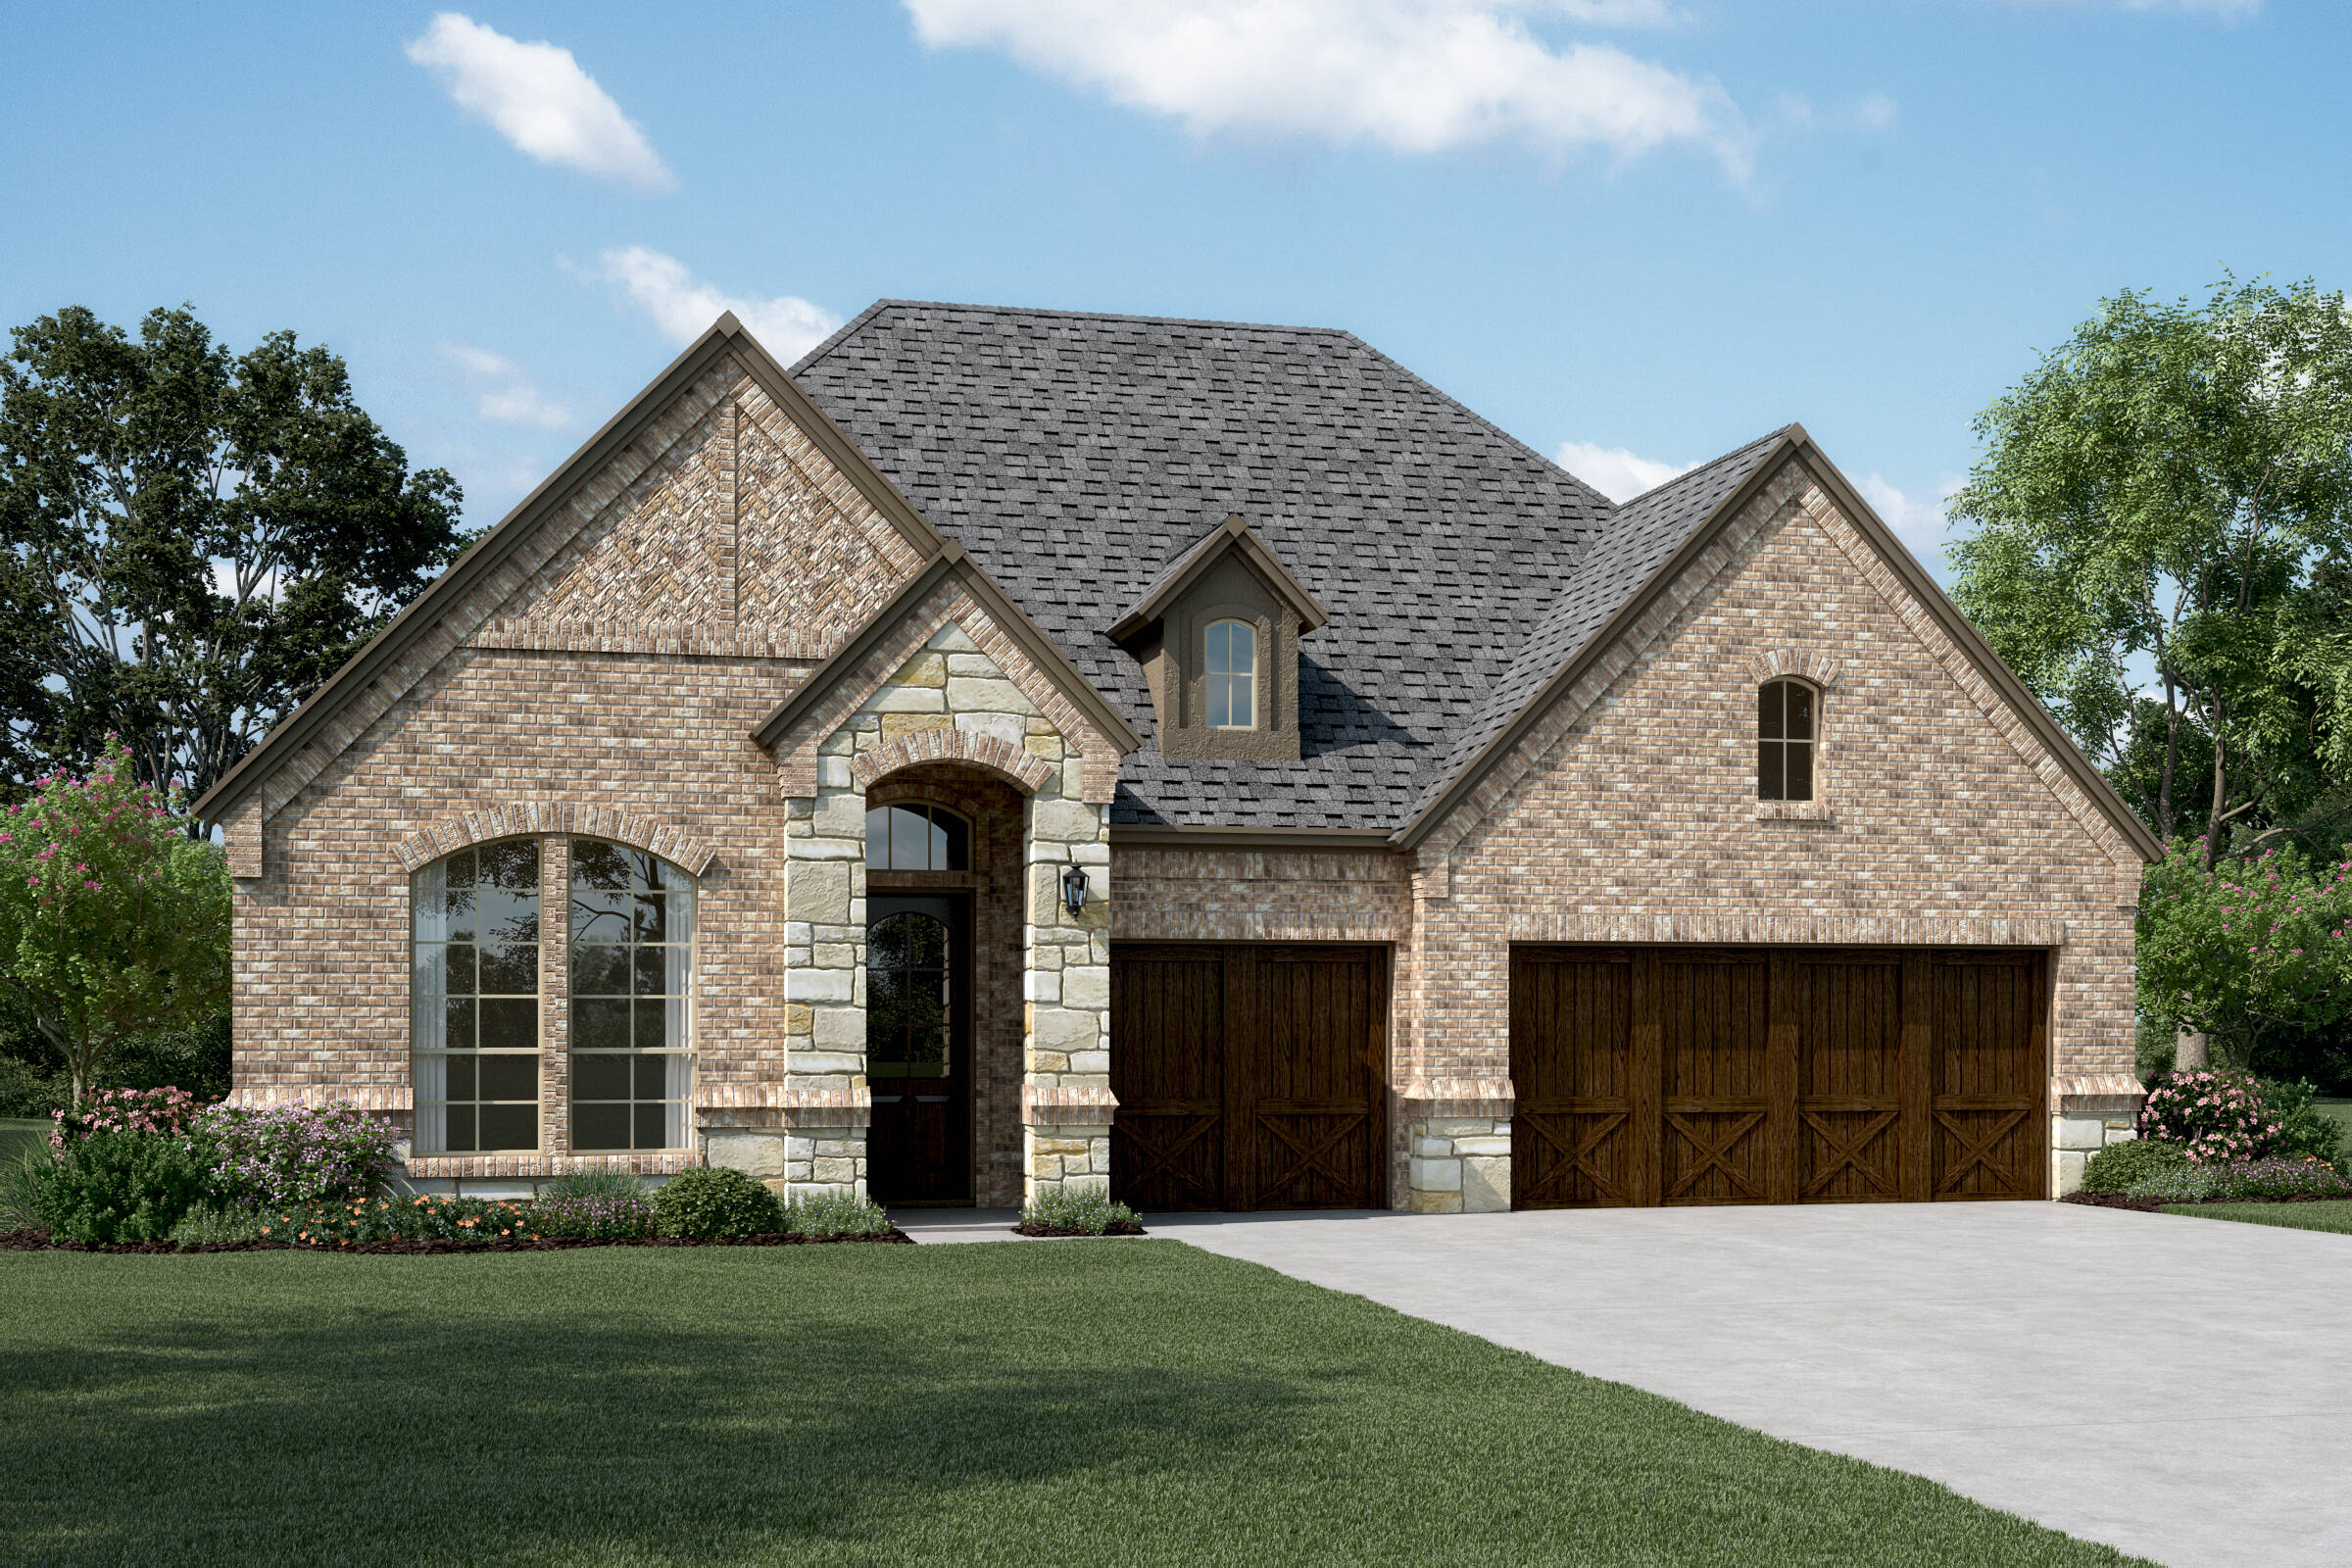 Homes Images creekside estates - new homes in wylie, tx